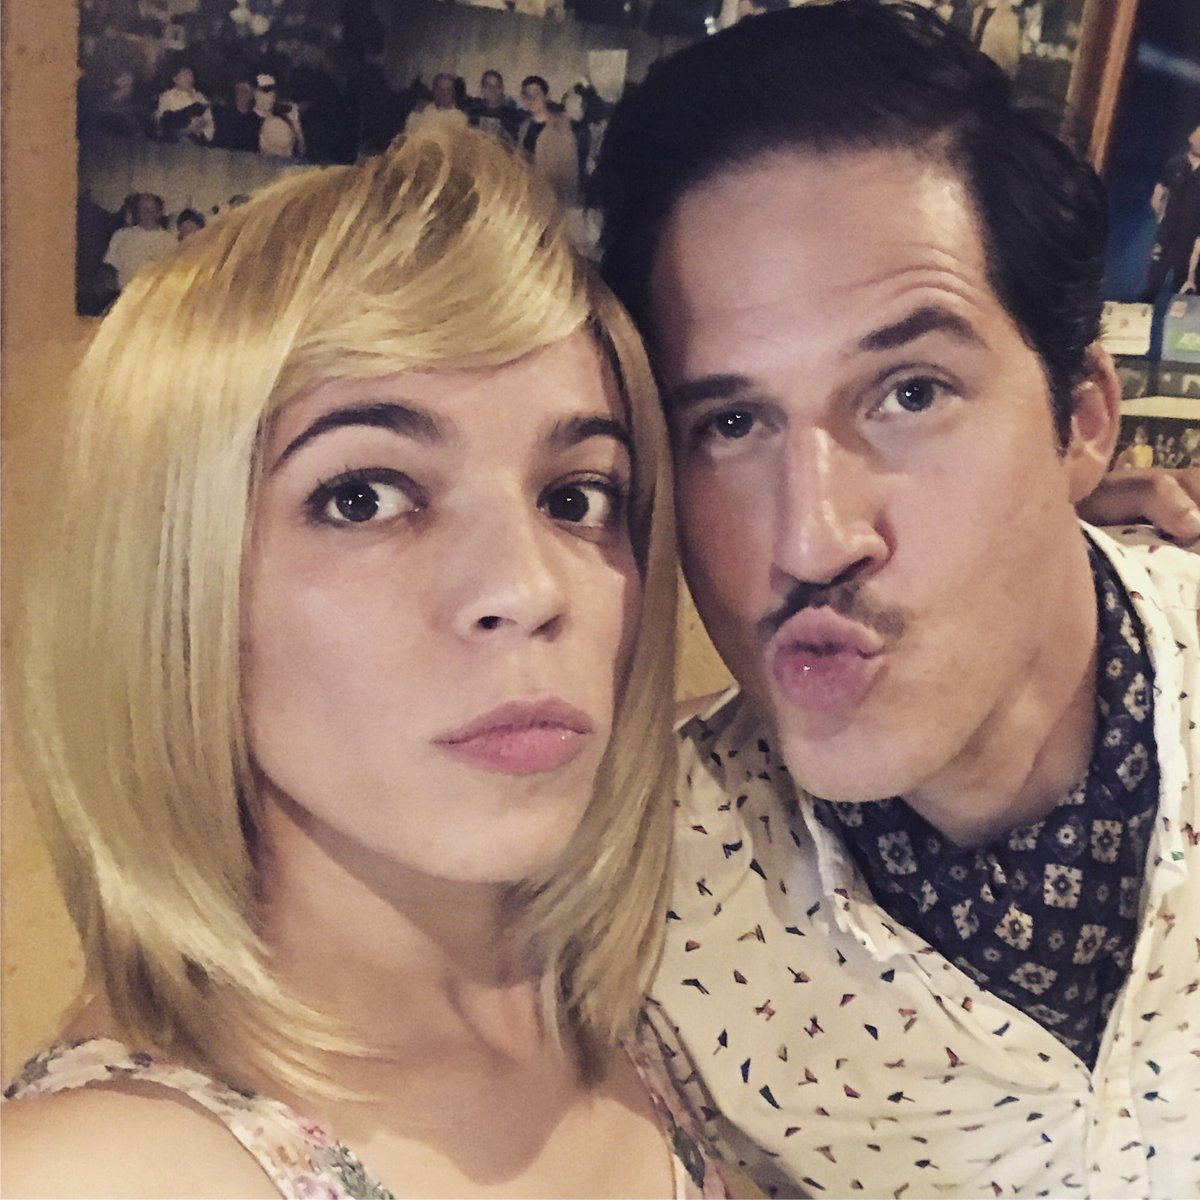 I had so much fun today playing CONCHITA for the project &quot;Kopfhoch, amigo&quot;. Thanks David Garzón for the laughs! #actorsonset #actresslife <br>http://pic.twitter.com/3TvjmEiZo0